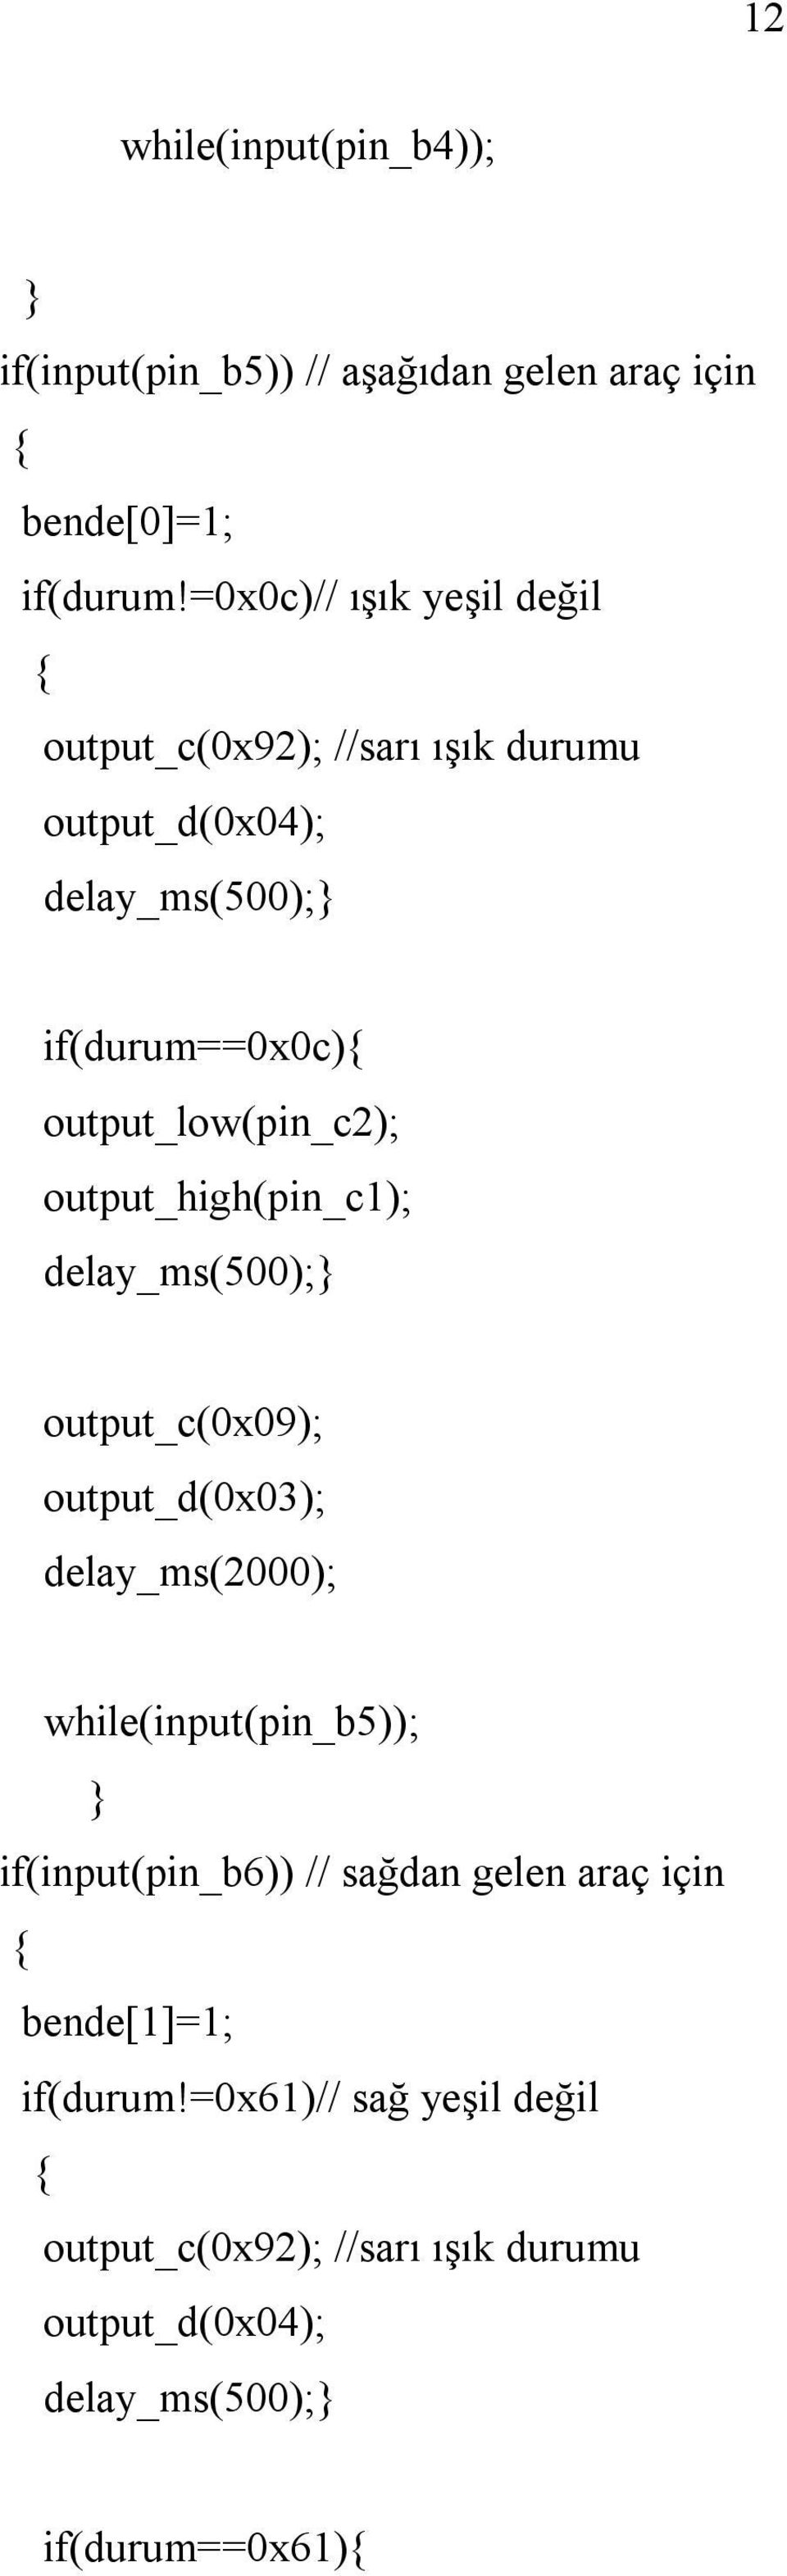 output_low(pin_c2); output_high(pin_c1); delay_ms(500);} output_c(0x09); output_d(0x03); delay_ms(2000); while(input(pin_b5)); }